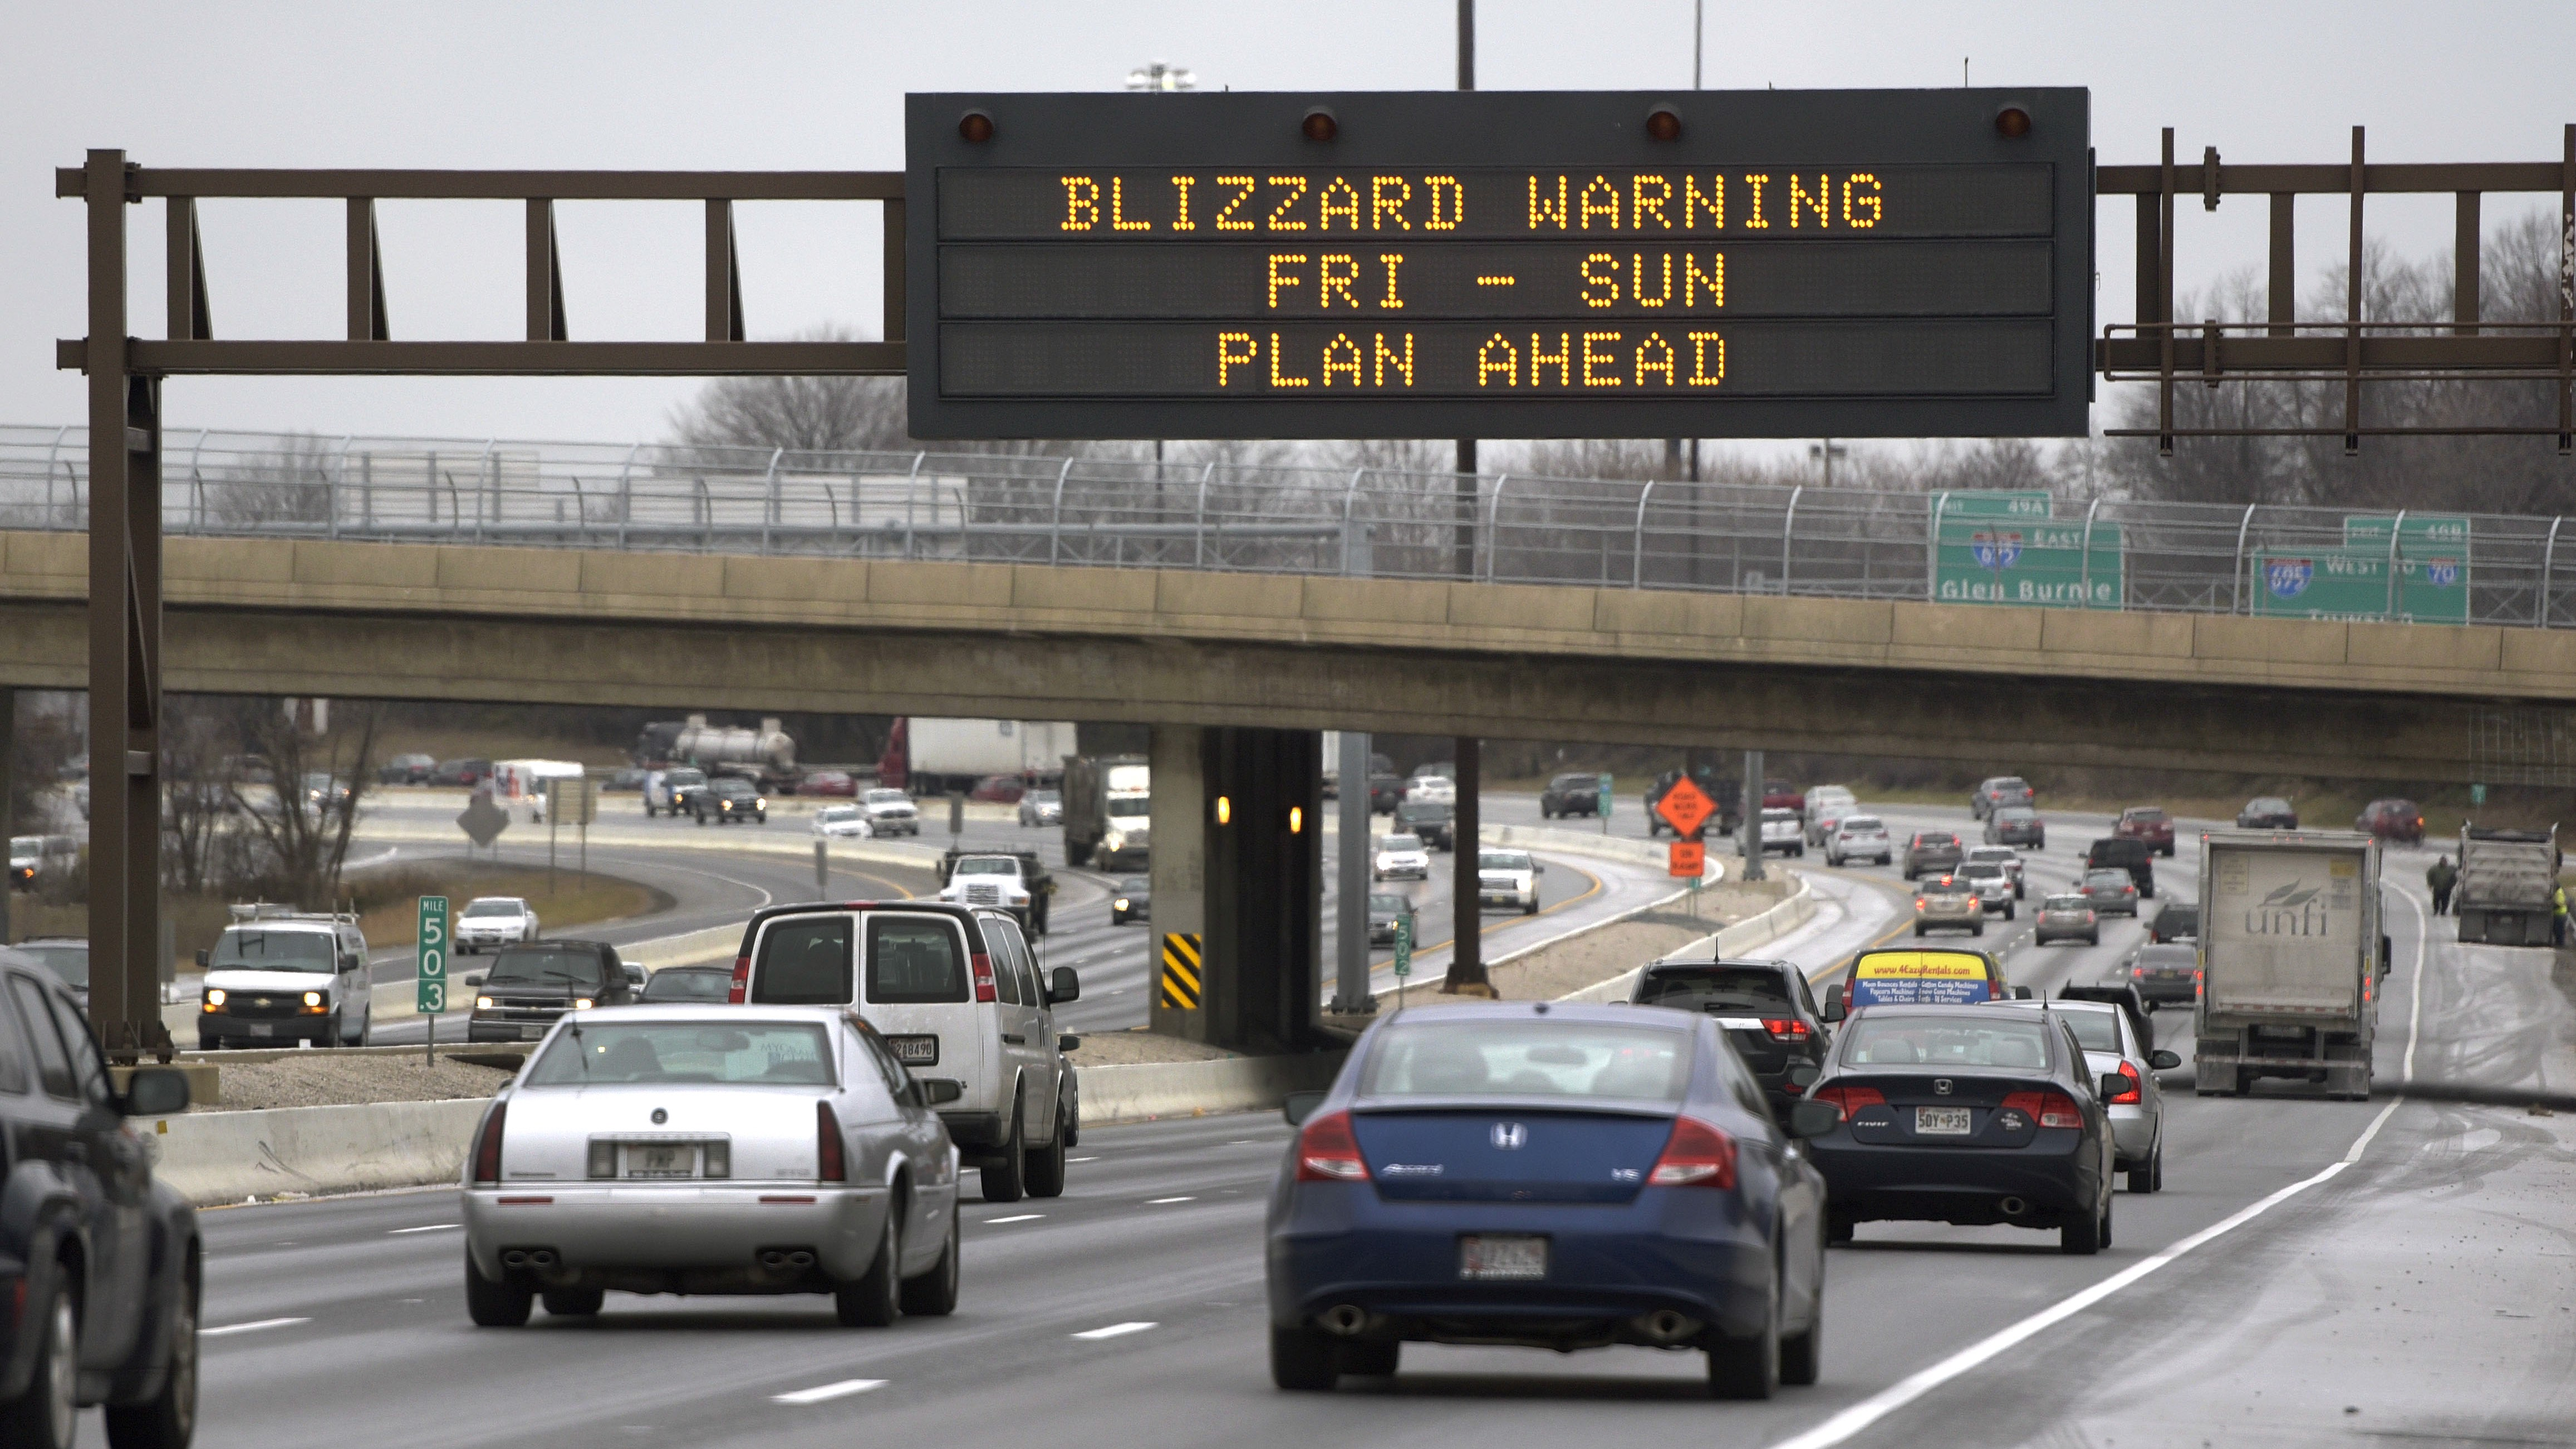 A sign warns south-bound motorists on Interstate 95 of an expected snowstorm, Friday, Jan. 22, 2016, in Baltimore. The northern mid-Atlantic region, including Baltimore, Washington and Philadelphia, is preparing for a weekend snowstorm that is now forecast to reach blizzard conditions. (AP Photo/Steve Ruark)